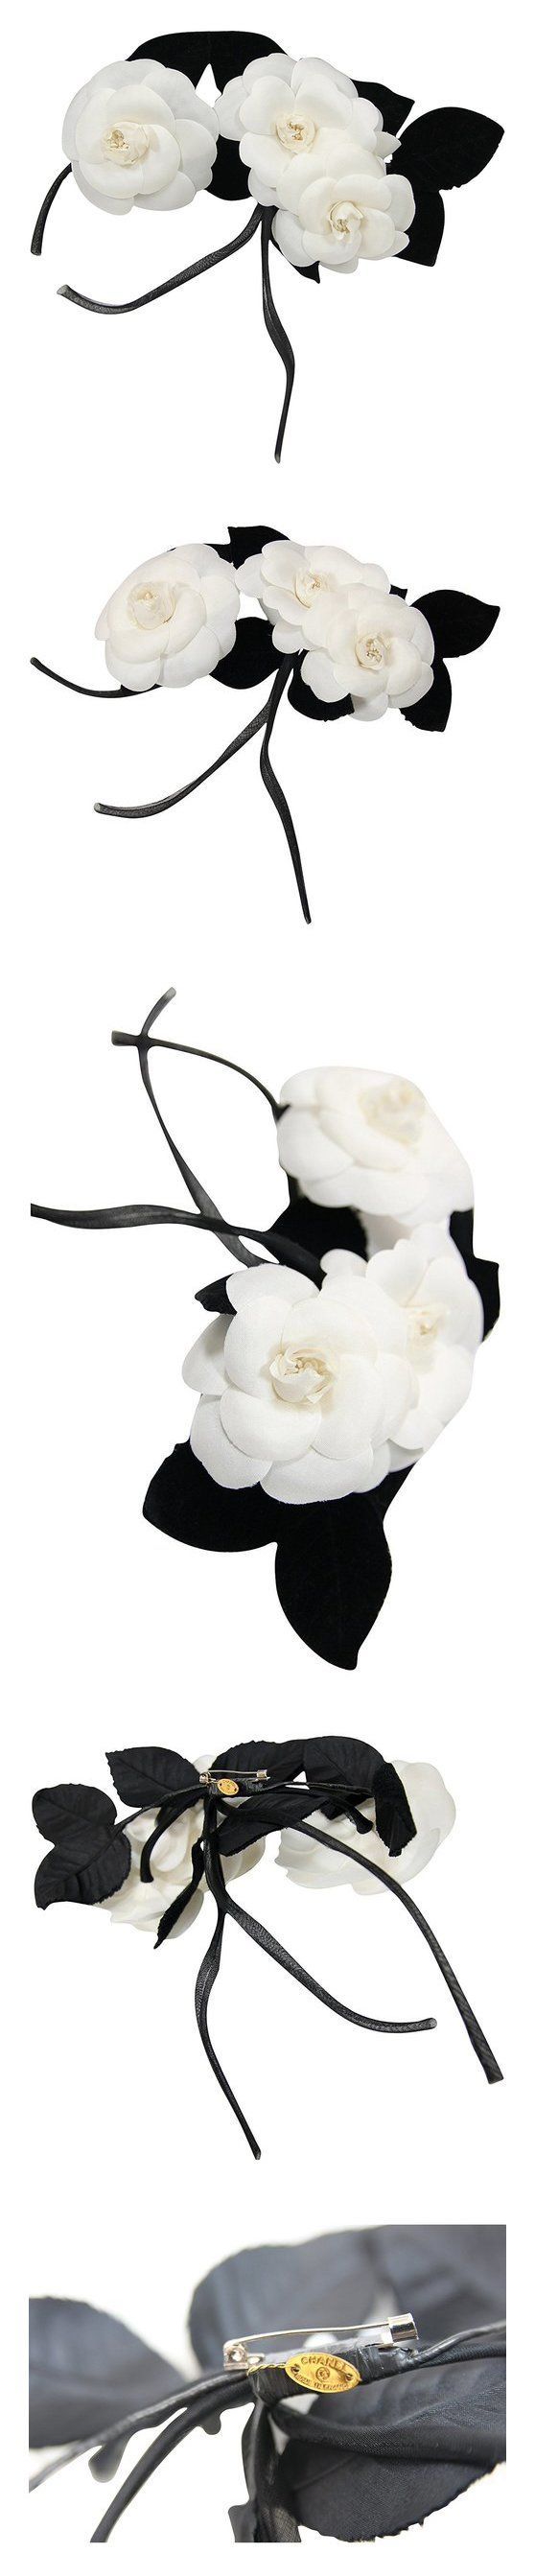 Chanel Camellia Flower Brooch #apparel #accessory #chanel #bridal_accessories #special_occasion_accessories #accessories #women #departments #shops